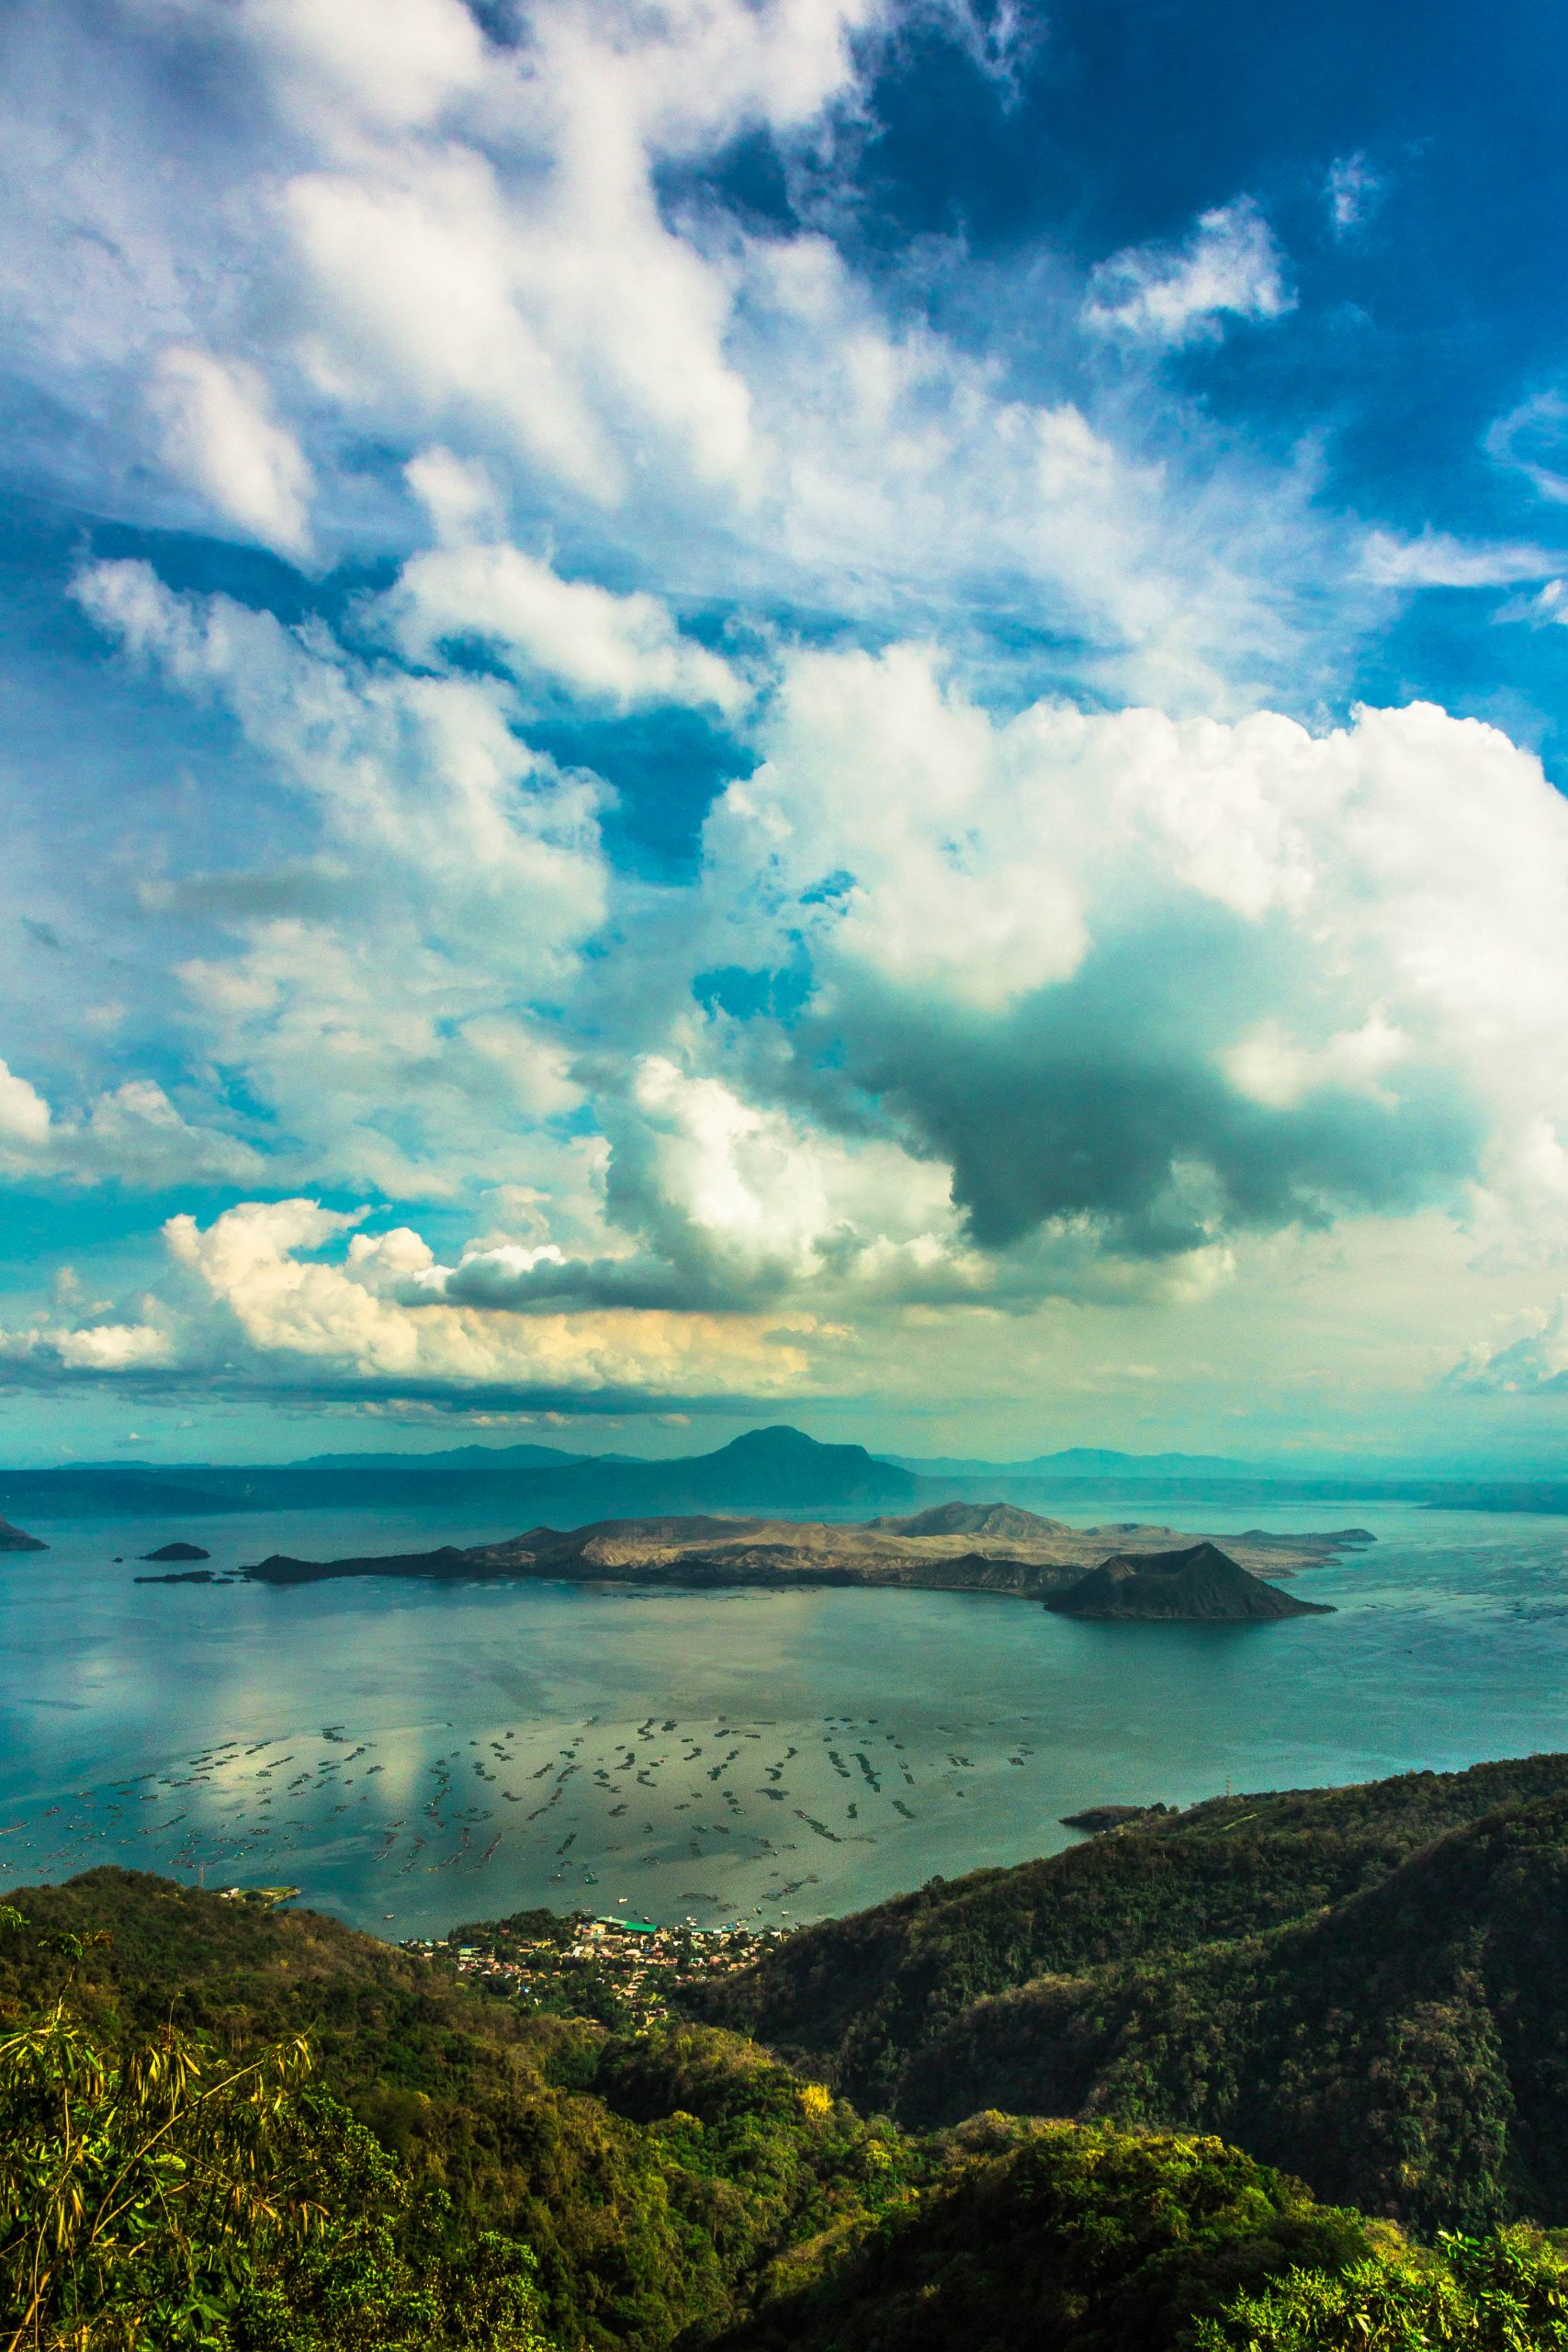 A view of a vast body of water (Taal Lake, to be exact, one of the largest lakes in the Philippines) with islands in its midst beneath a partially cloudy sky